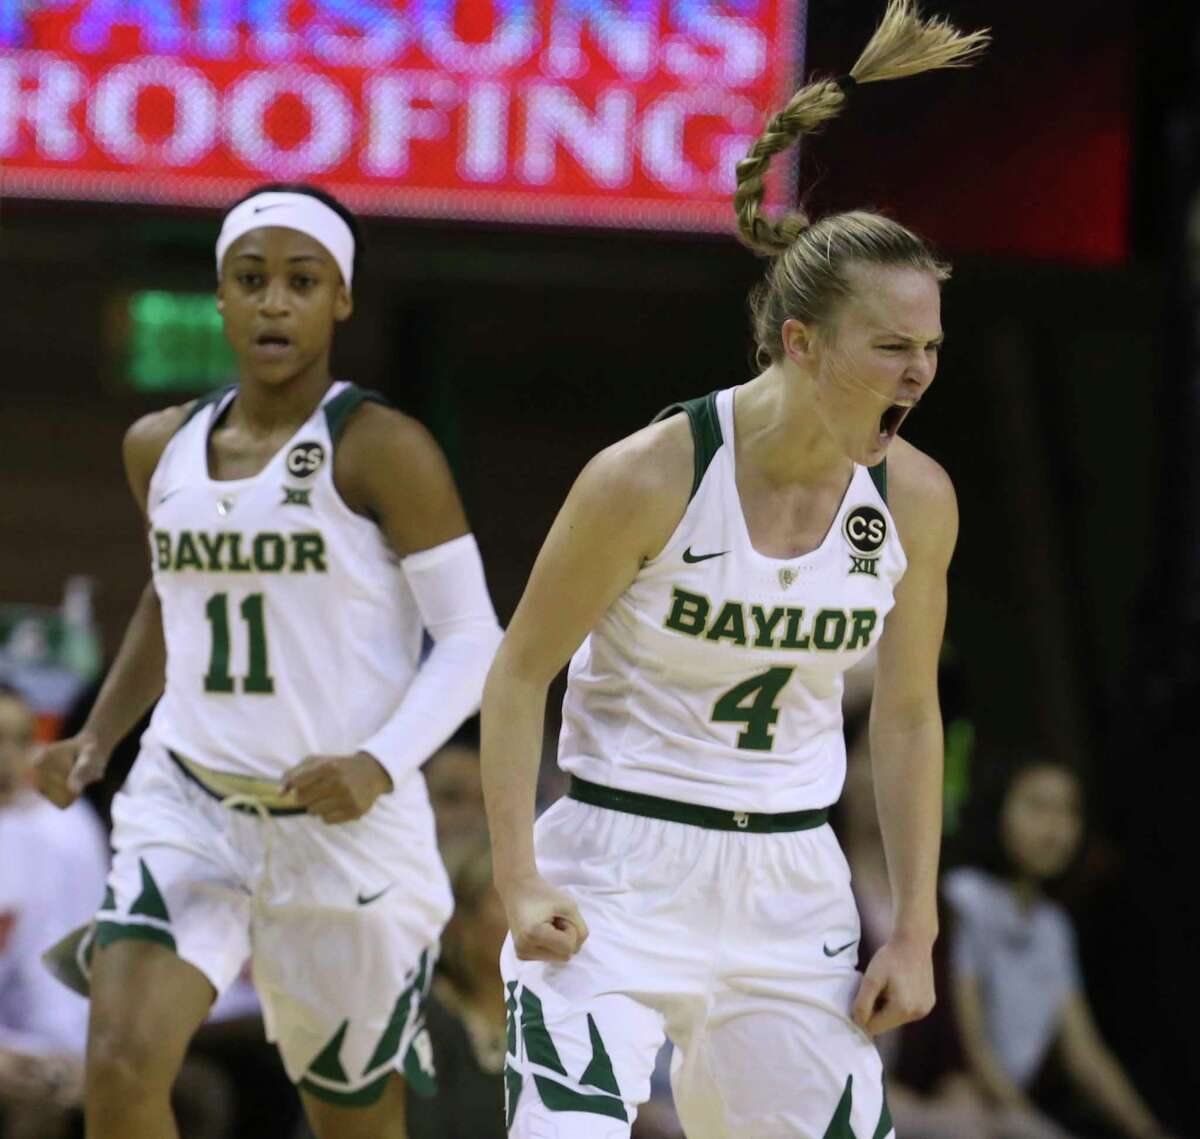 Baylor guard Kristy Wallace, right, reacts after scoring against Texas, next to guard Alexis Morris duringthe first half of an NCAA college basketball game, Thursday, Jan. 25, 2018, in Waco, Texas. (AP Photo/Rod Aydelotte)